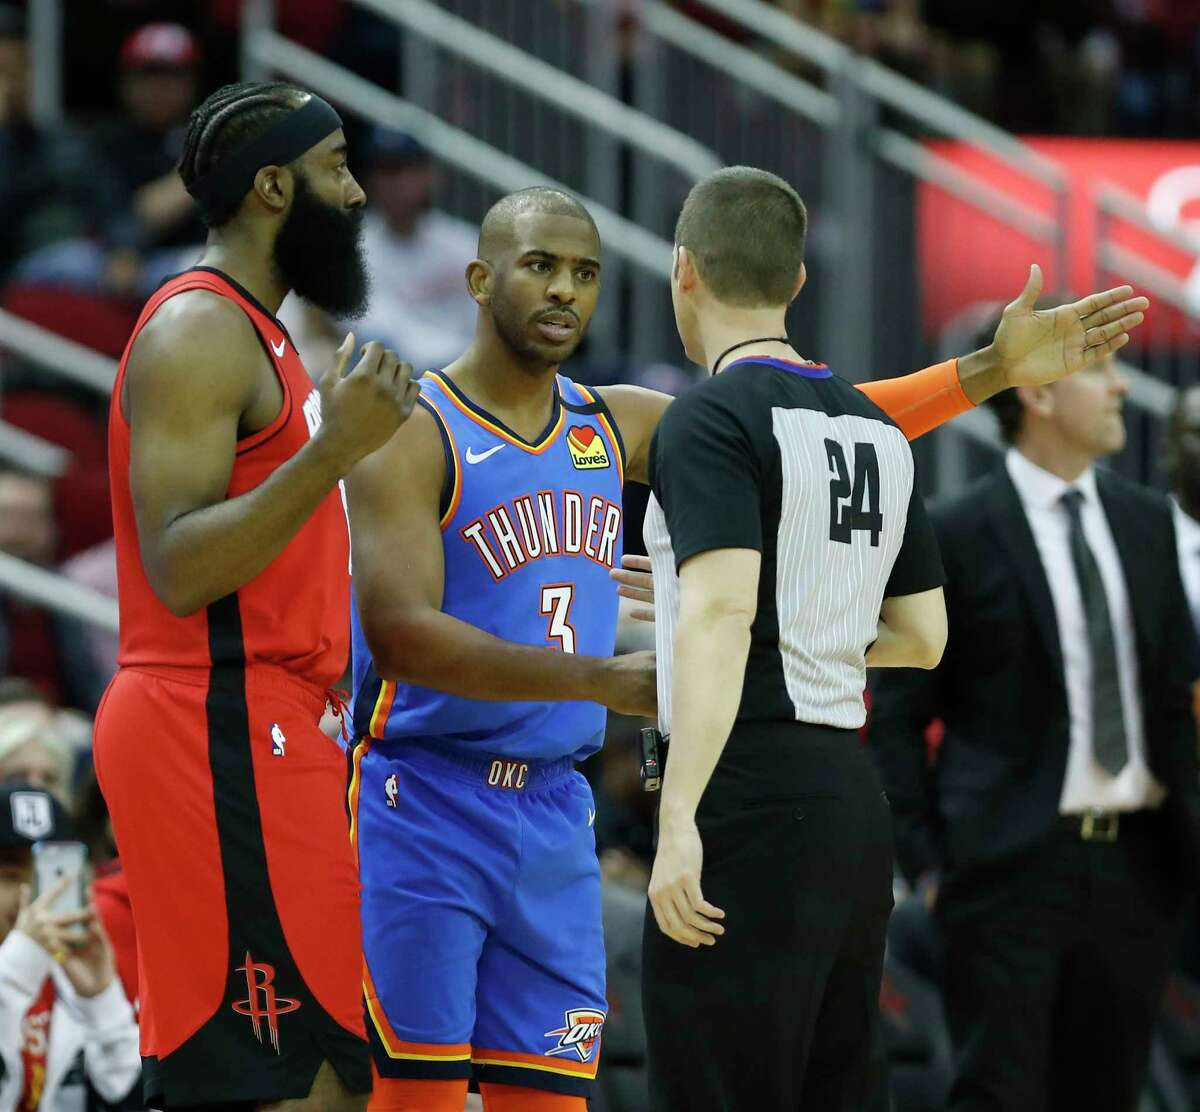 Oklahoma City Thunder guard Chris Paul (3) and Houston Rockets guard James Harden (13) argue with referee Kevin Scott (24) during the first half of an MBA basketball game at Toyota Center, in Houston, Monday, Jan. 20, 2020.